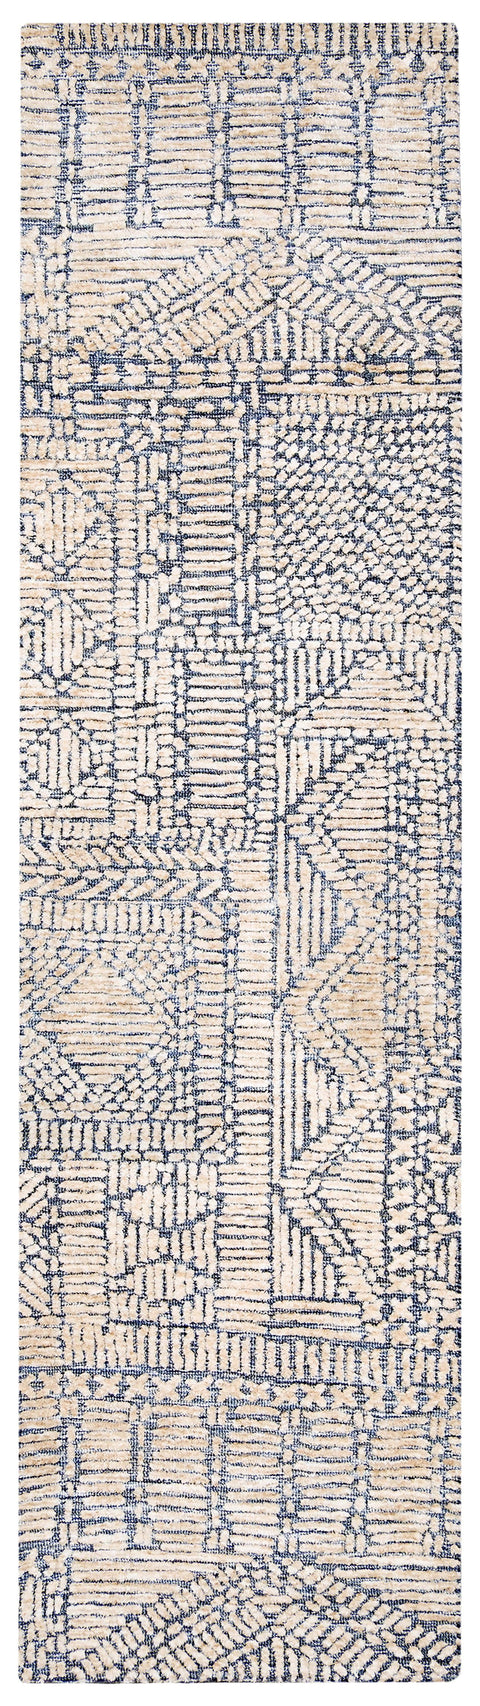 Karmen Blue and Ivory Geometric Patterned Runner Rug